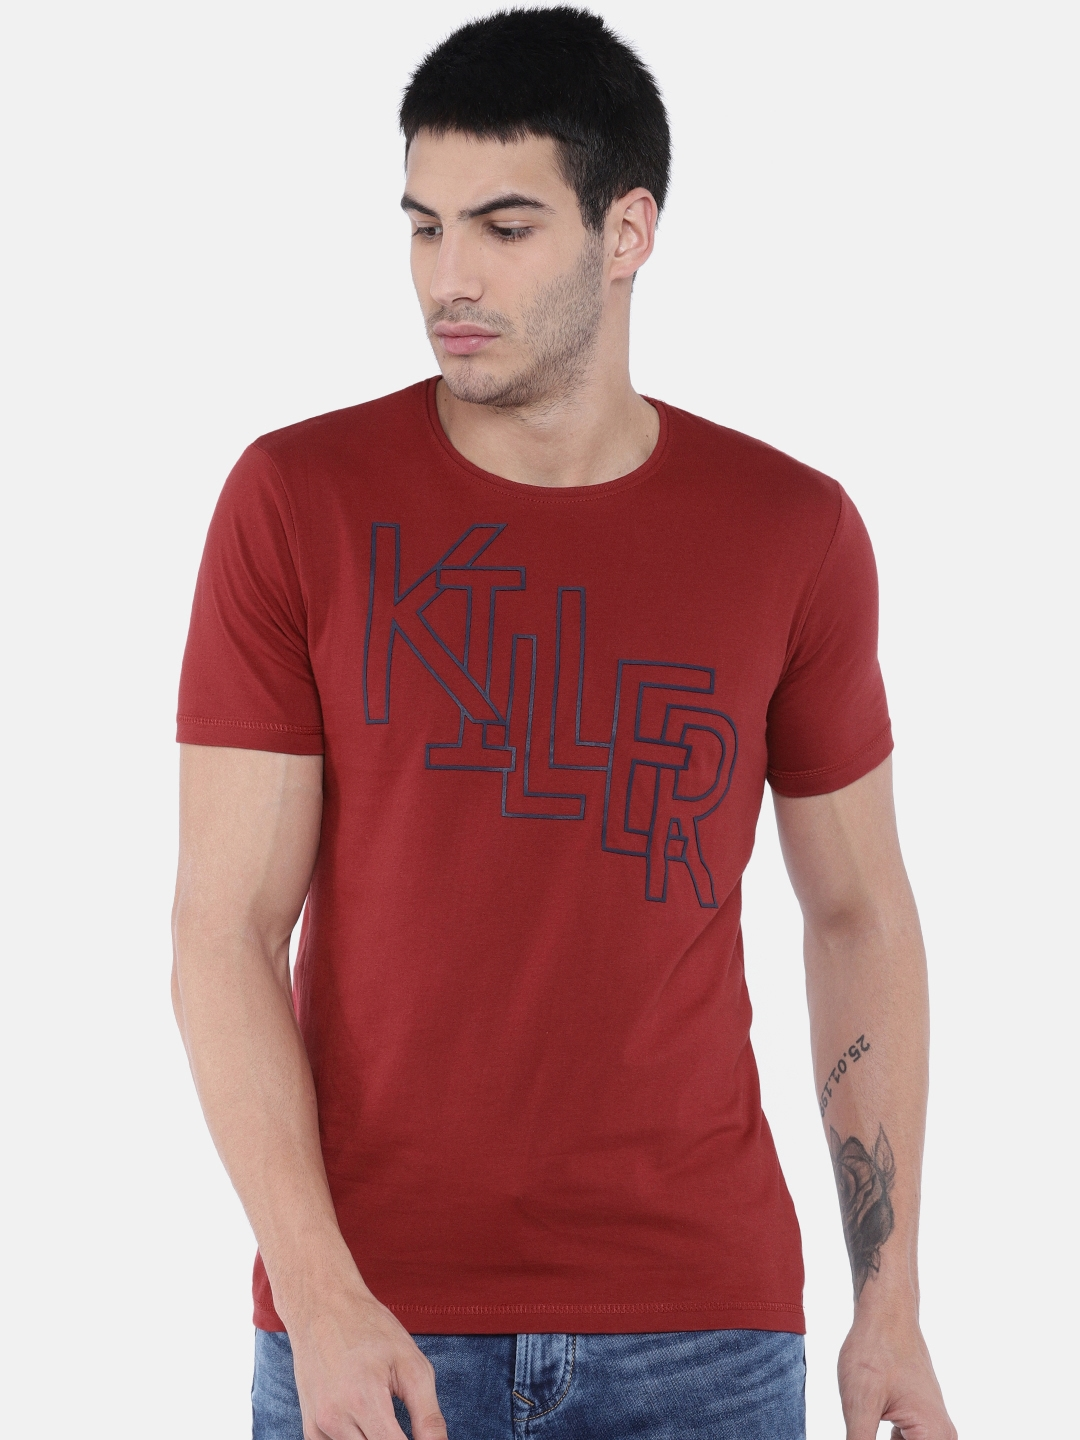 7a9a1cc02 Buy Killer Men Maroon Slim Fit Printed Round Neck T Shirt - Tshirts ...